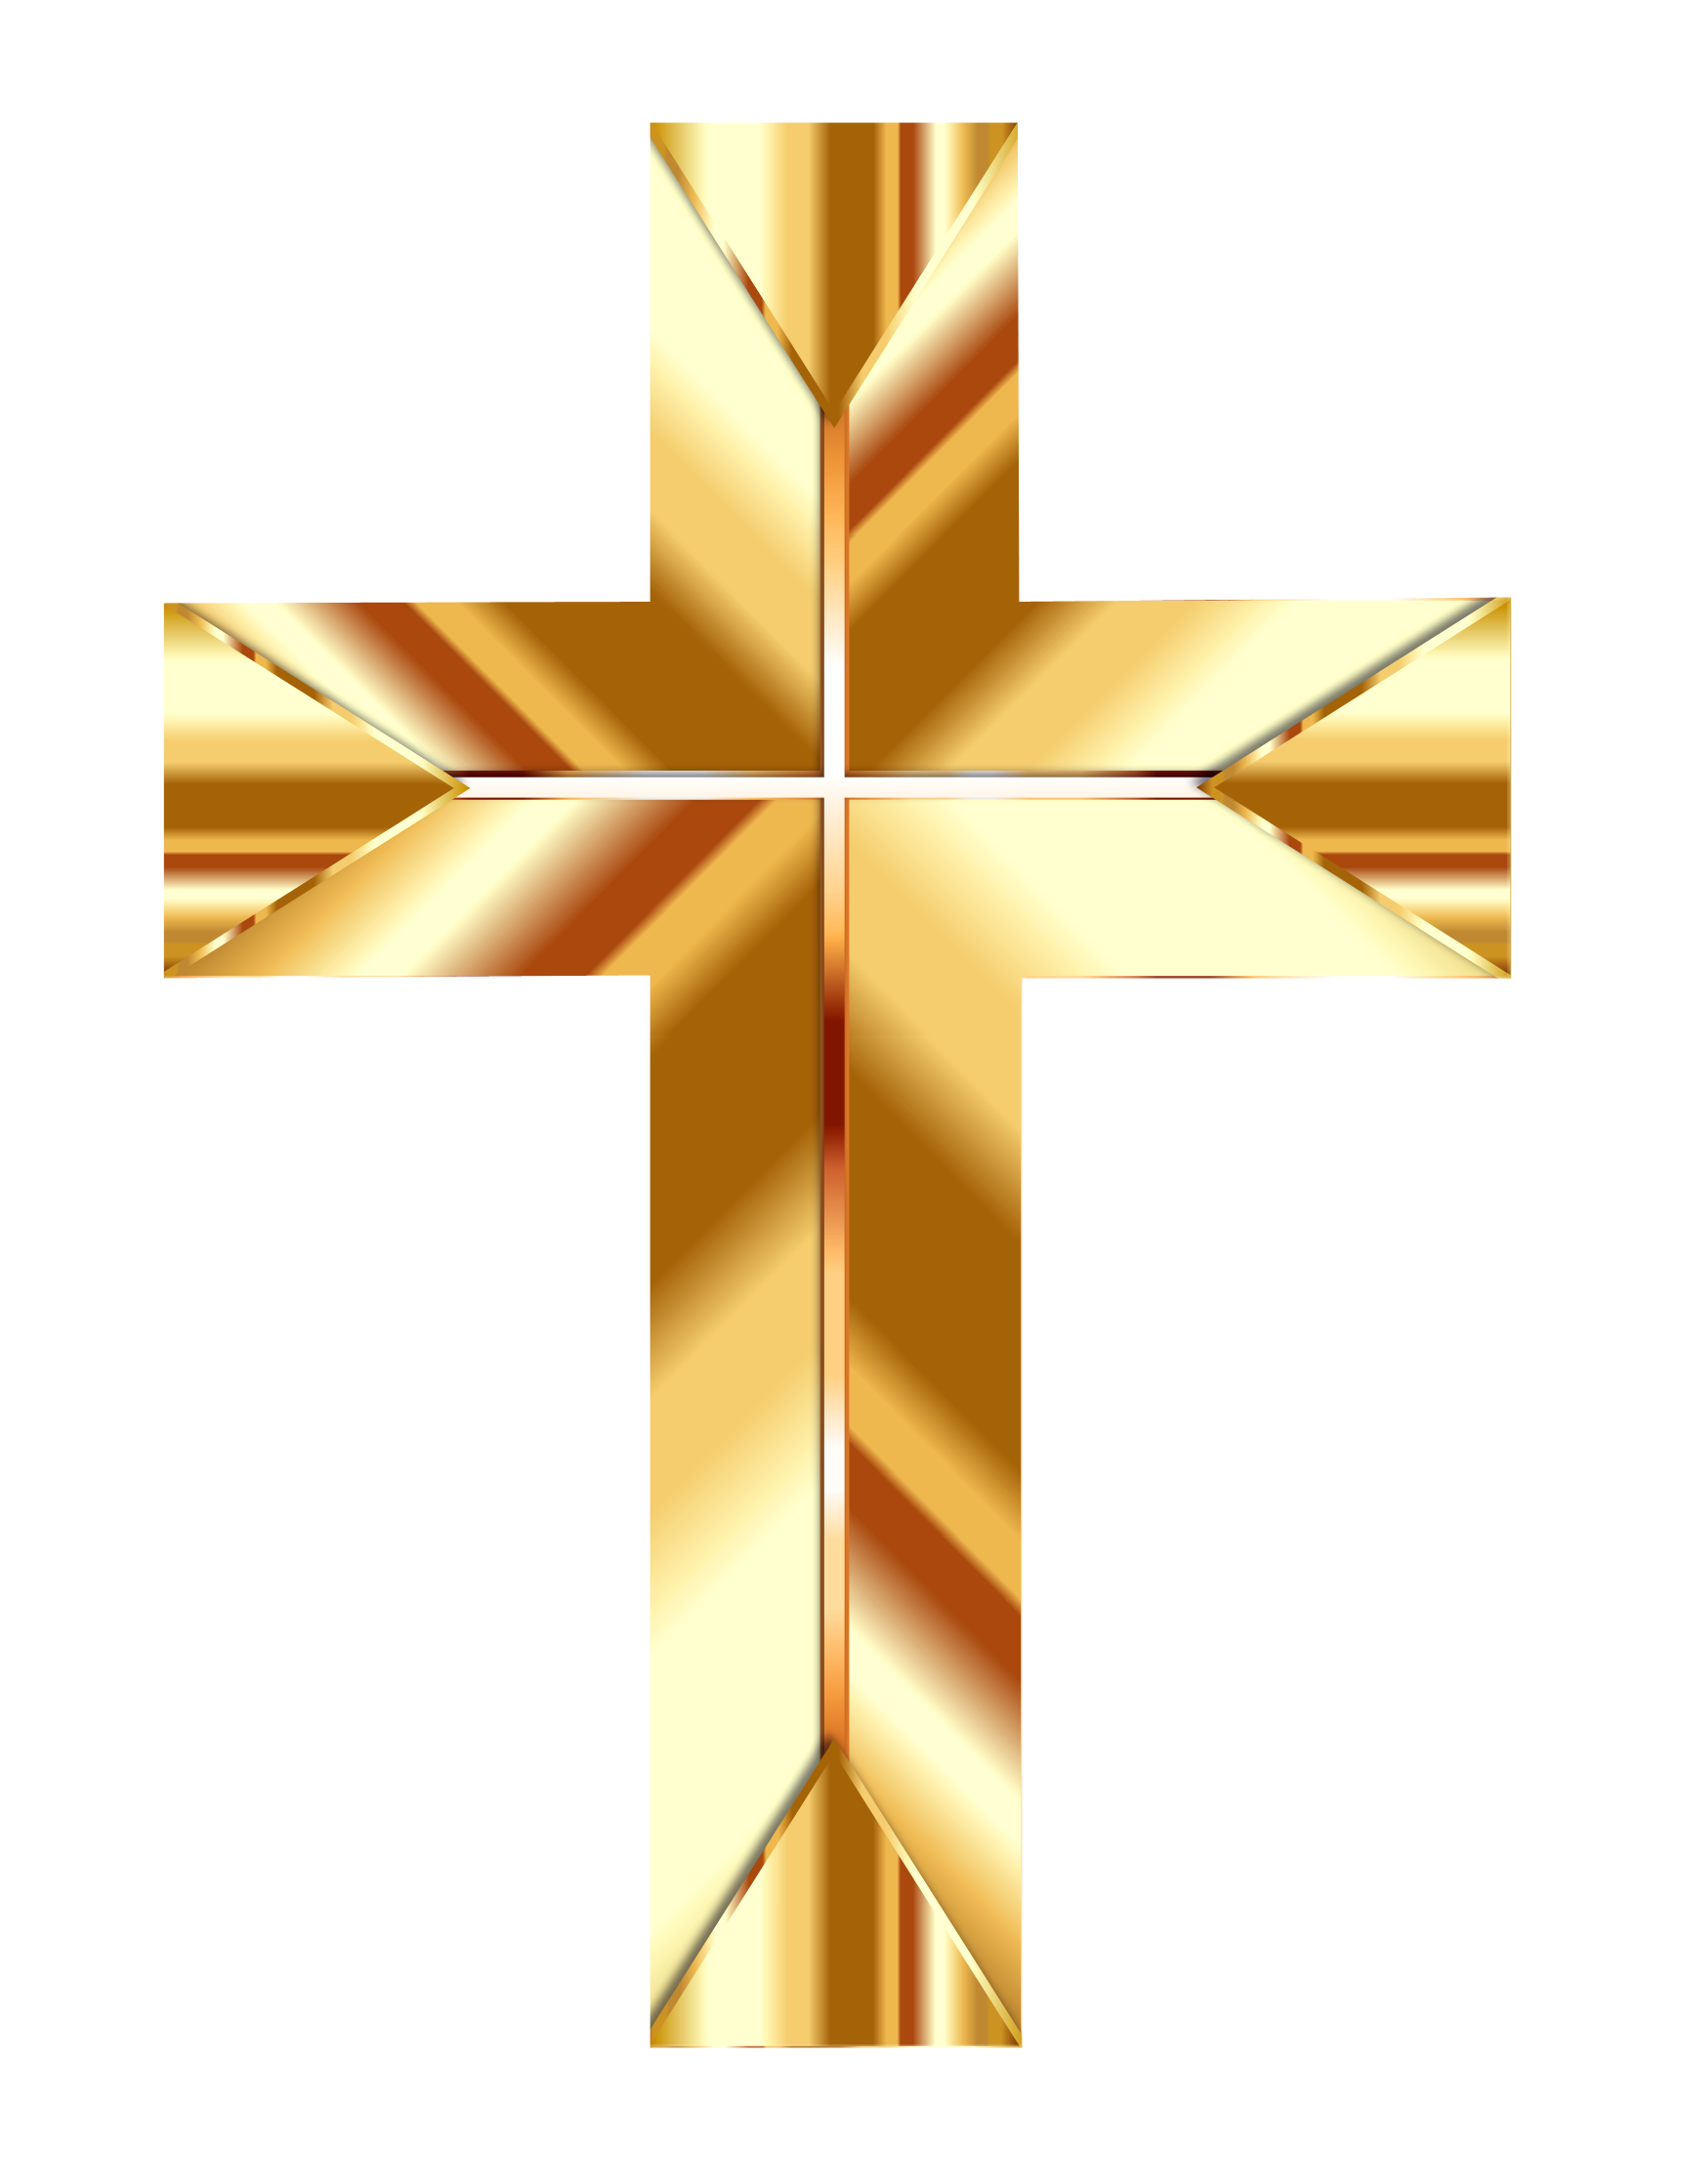 Christian png images free. Cross clipart transparent background